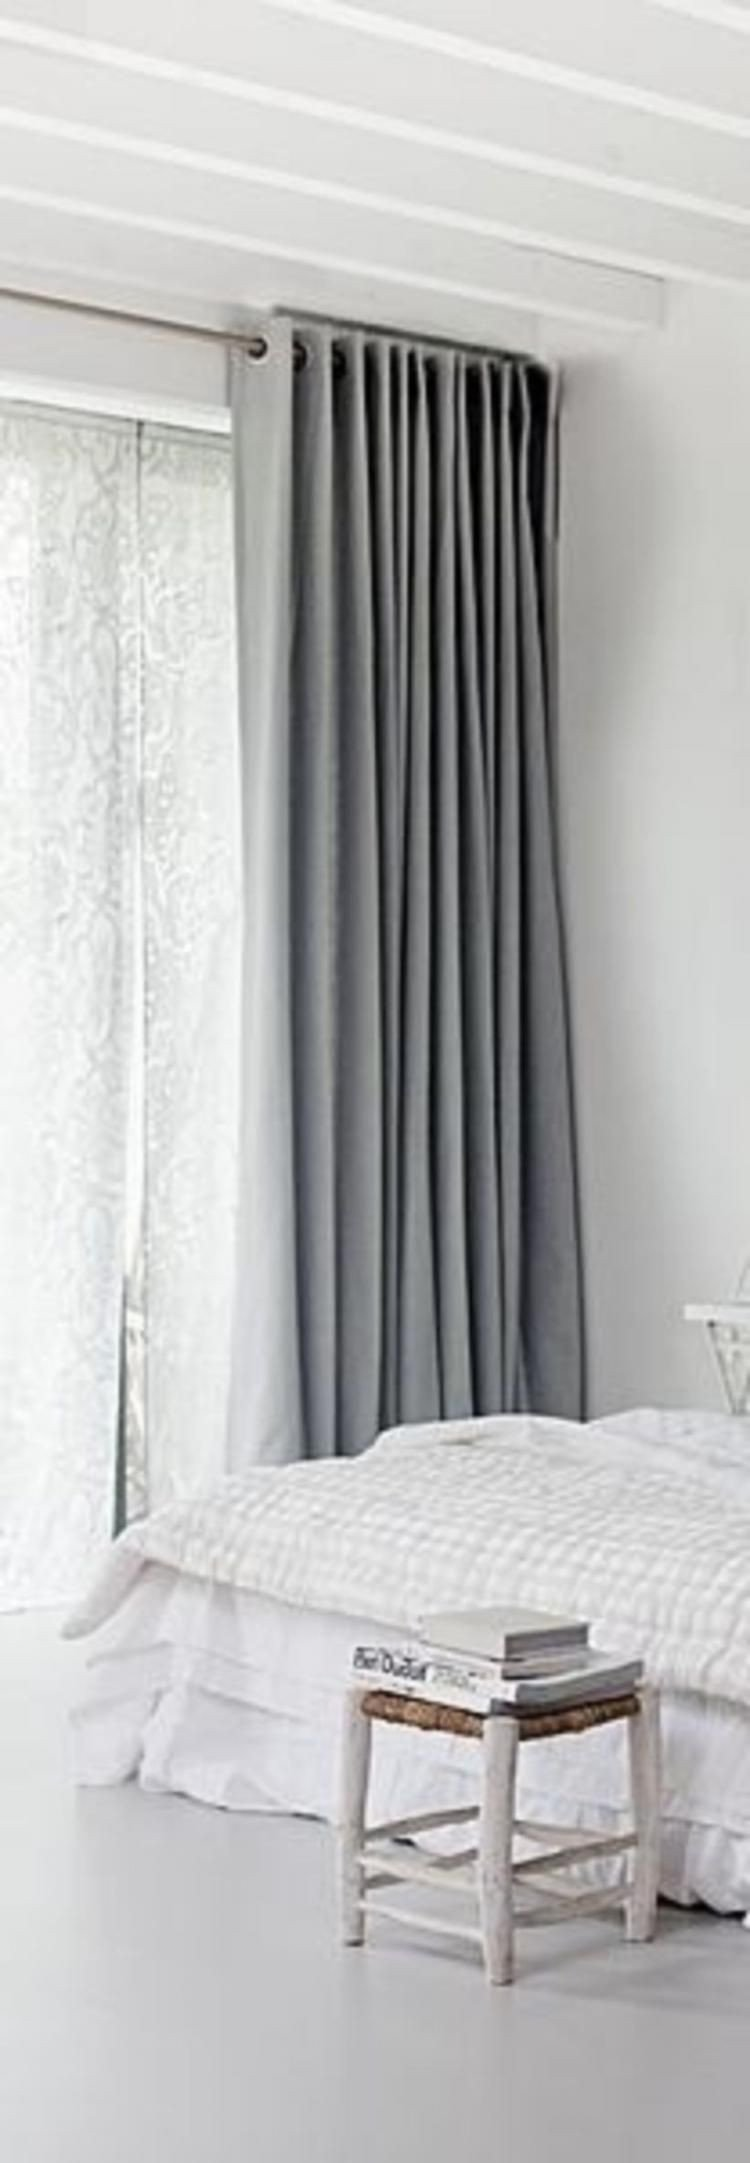 Grey Curtains for Bedroom Fresh Luxurious Bedroom with Grey Curtains Decor